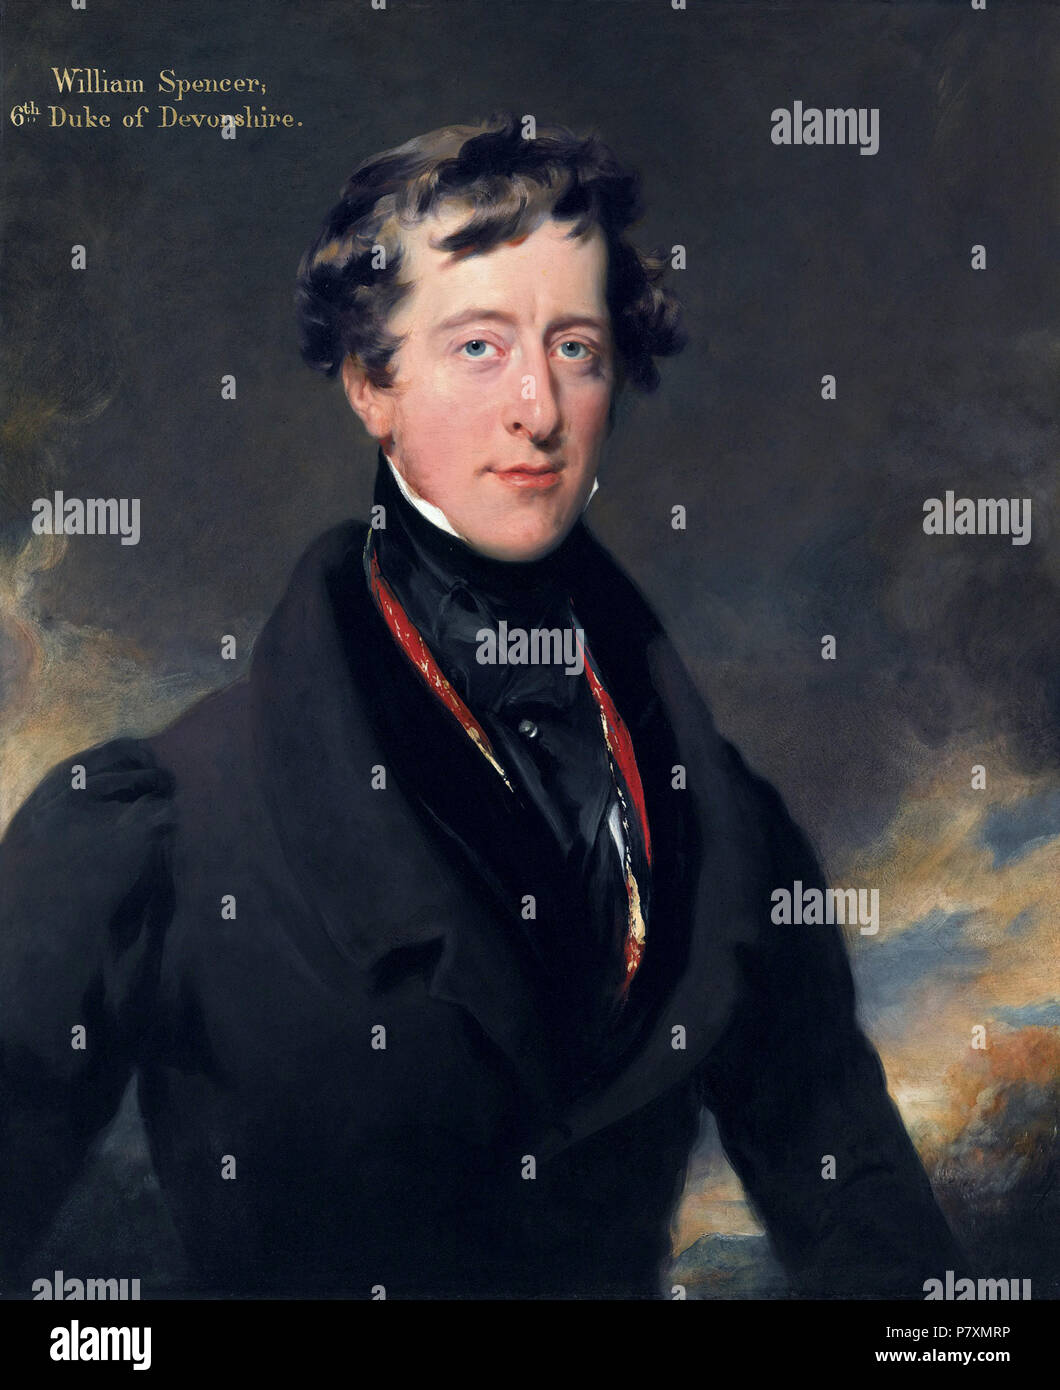 William Spencer Cavendish, 6th Duke of Devonshire (1790-1858). Painting by Thomas Lawrence  William George Spencer Cavendish, 6th Duke of Devonshire, Marquess of Hartington, British peer, nobleman, and Whig politician. The Cavendish banana is named after him. - Stock Image